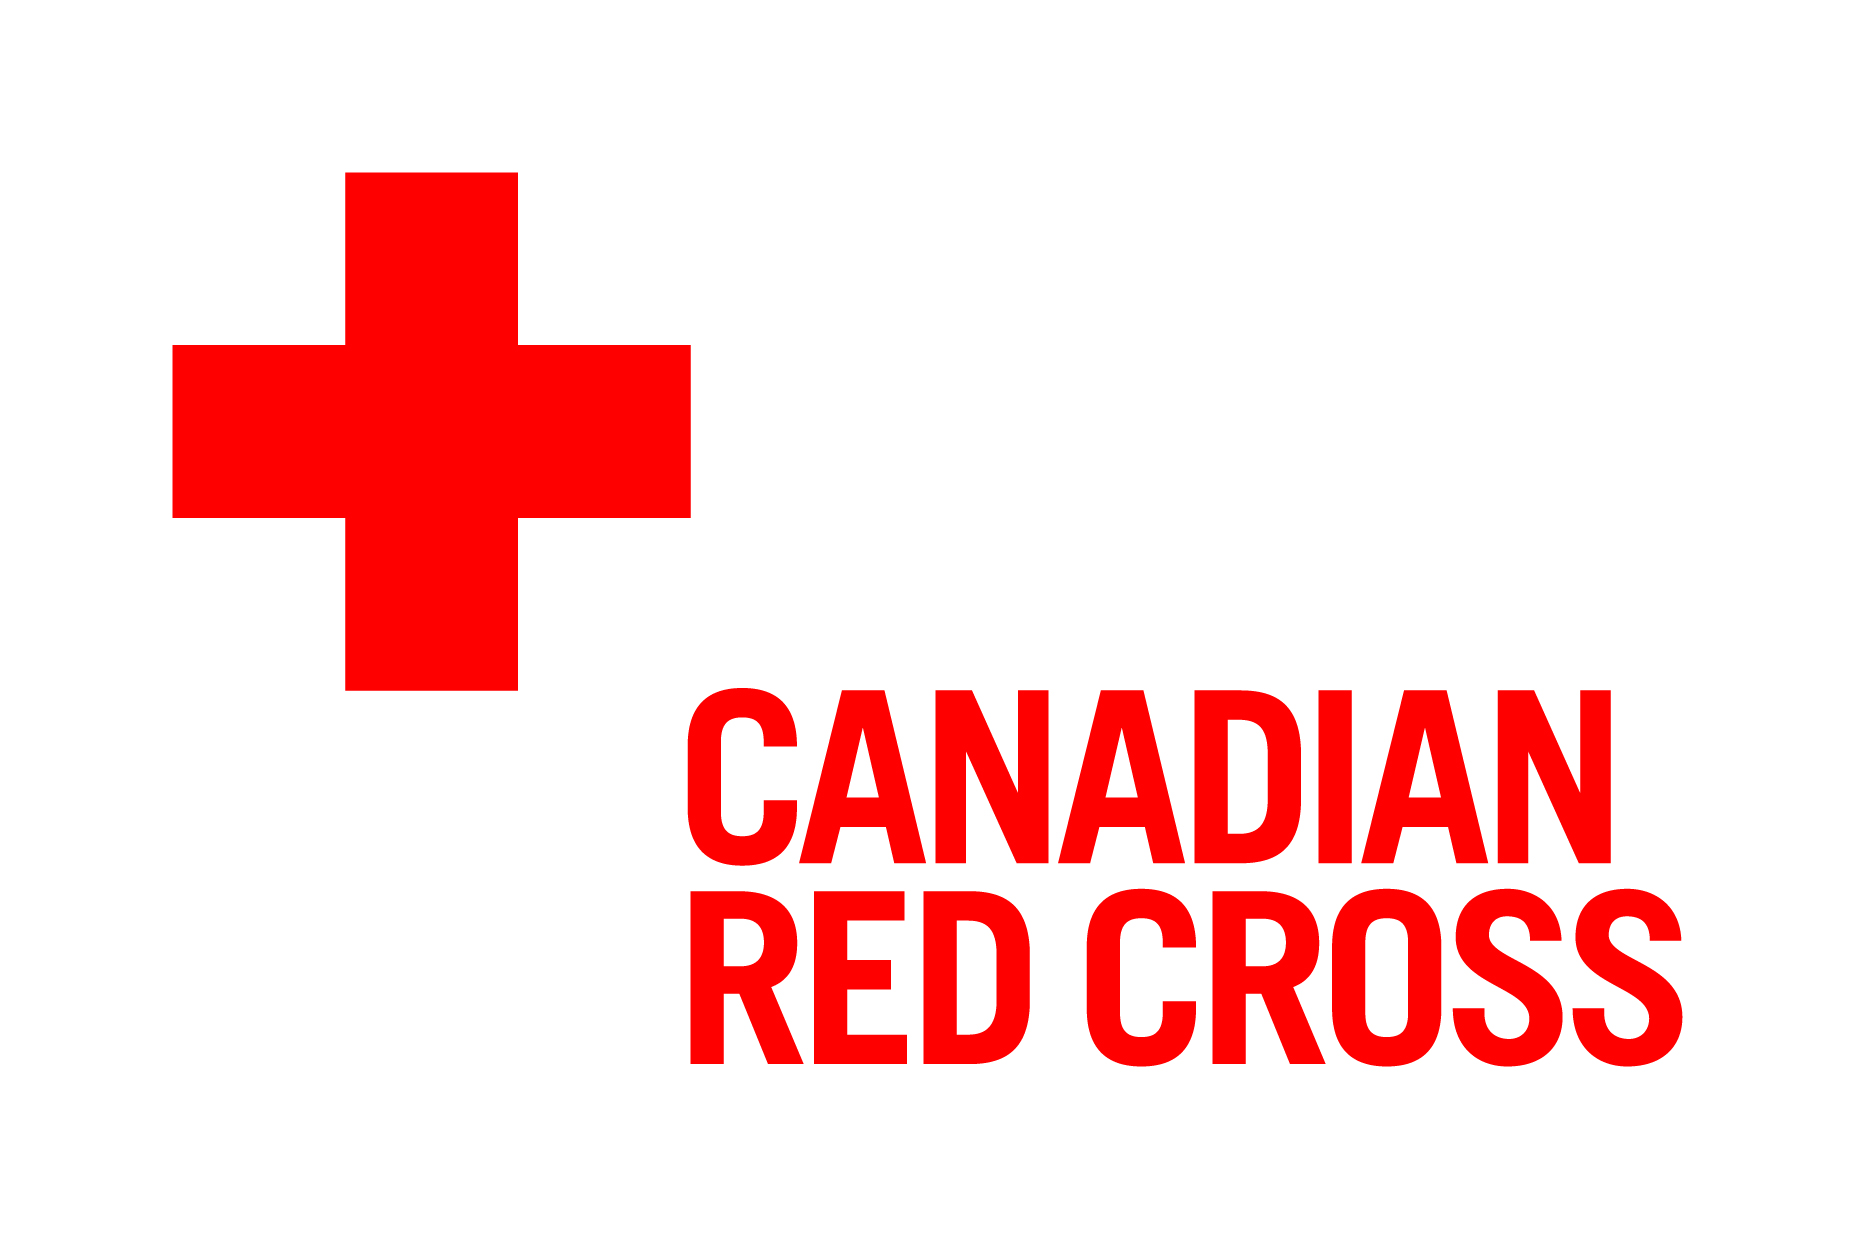 Canadian-Red-Cross-Logo-2013.jpg